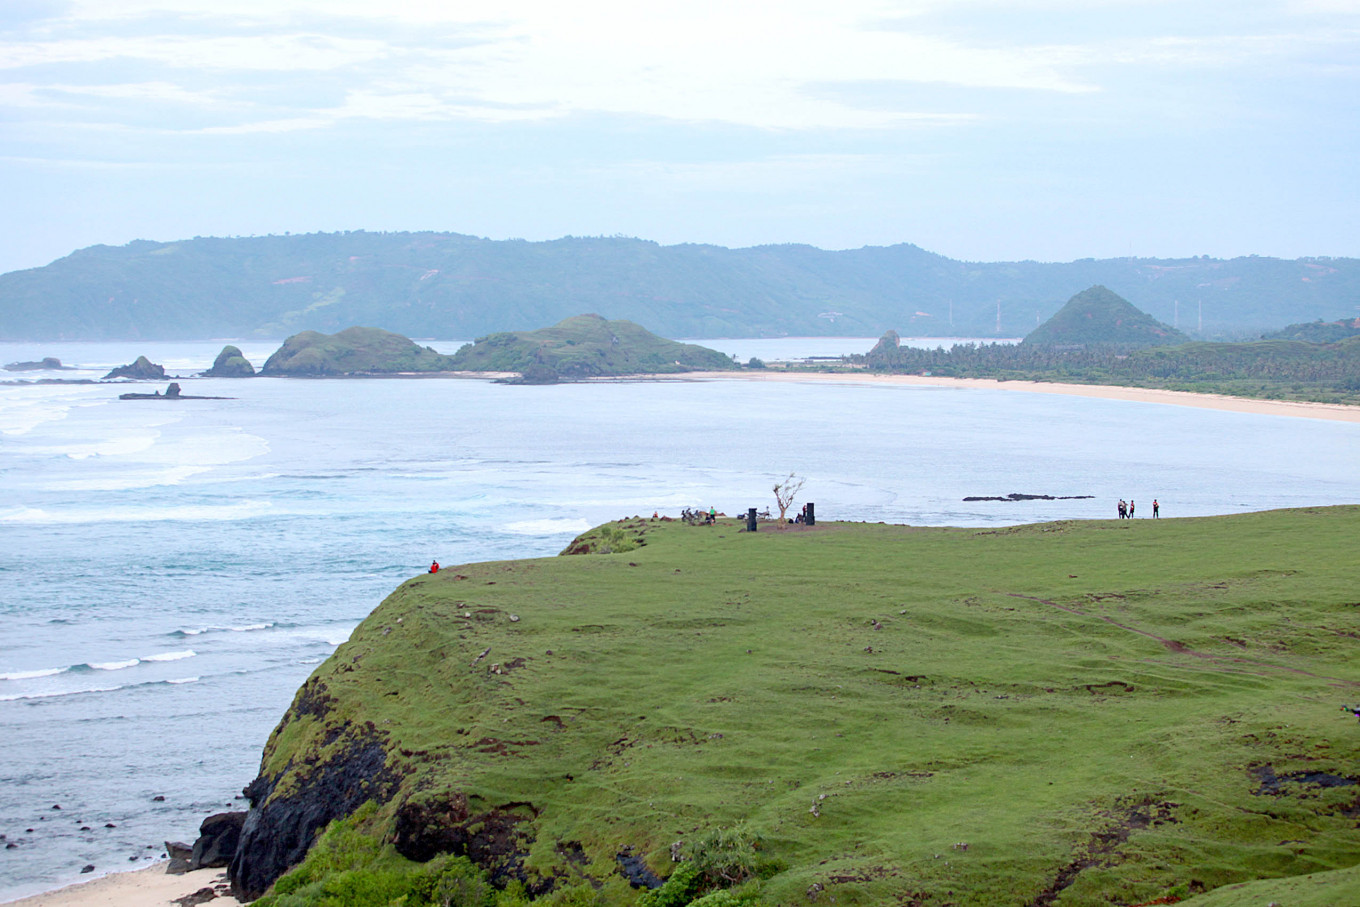 Indonesia to host 2021 MotoGP race in Lombok